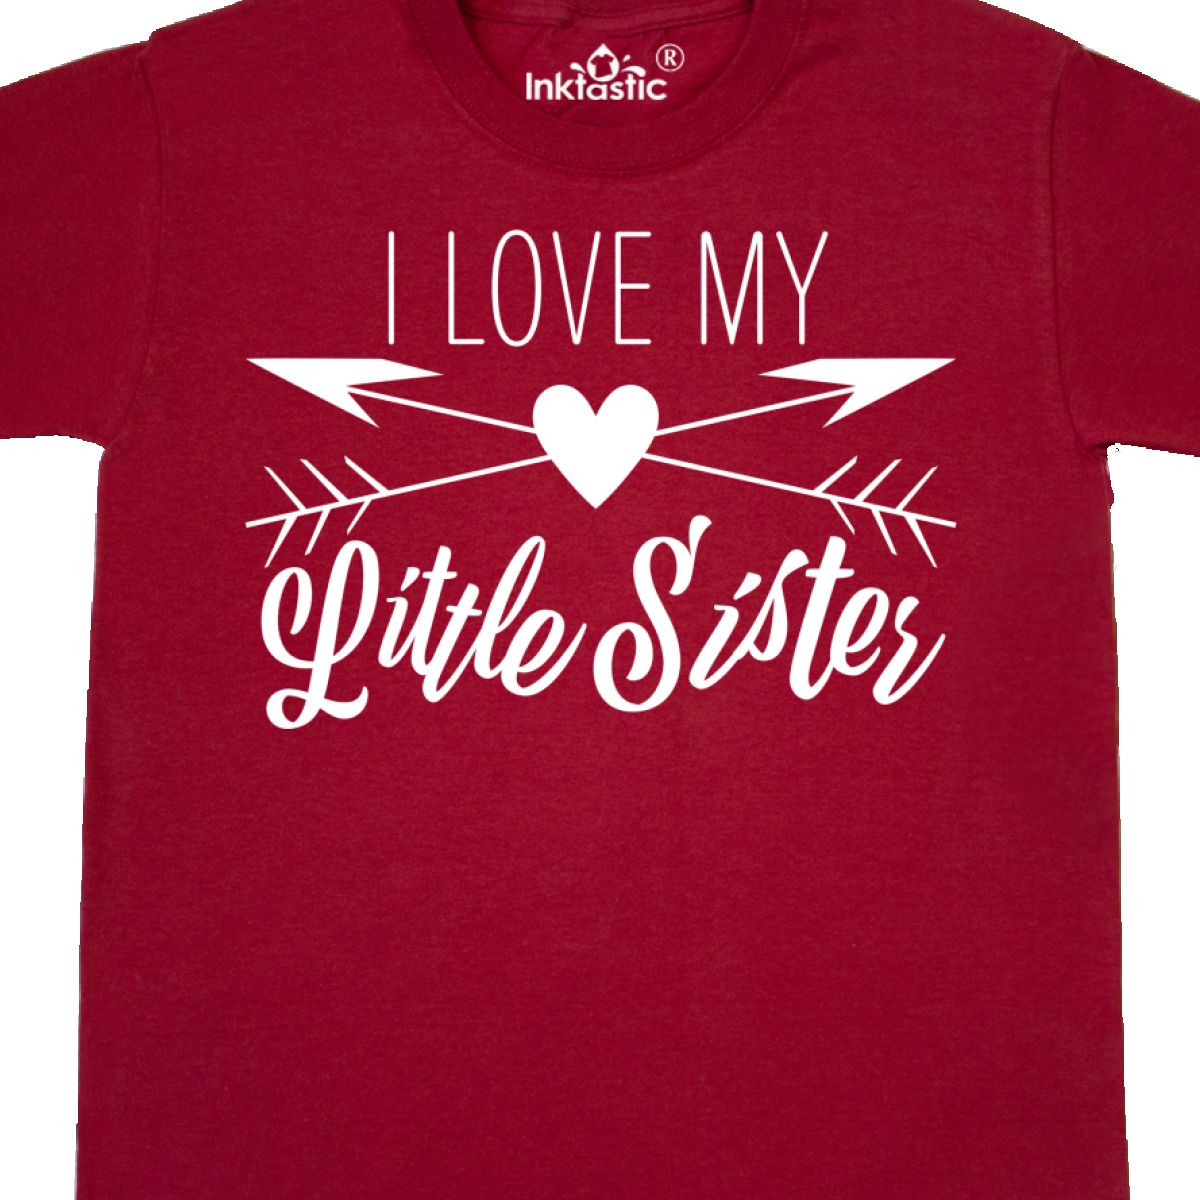 cccdd8228 Inktastic I Love My Little Sister Heart And Arrows Youth T-Shirt ...